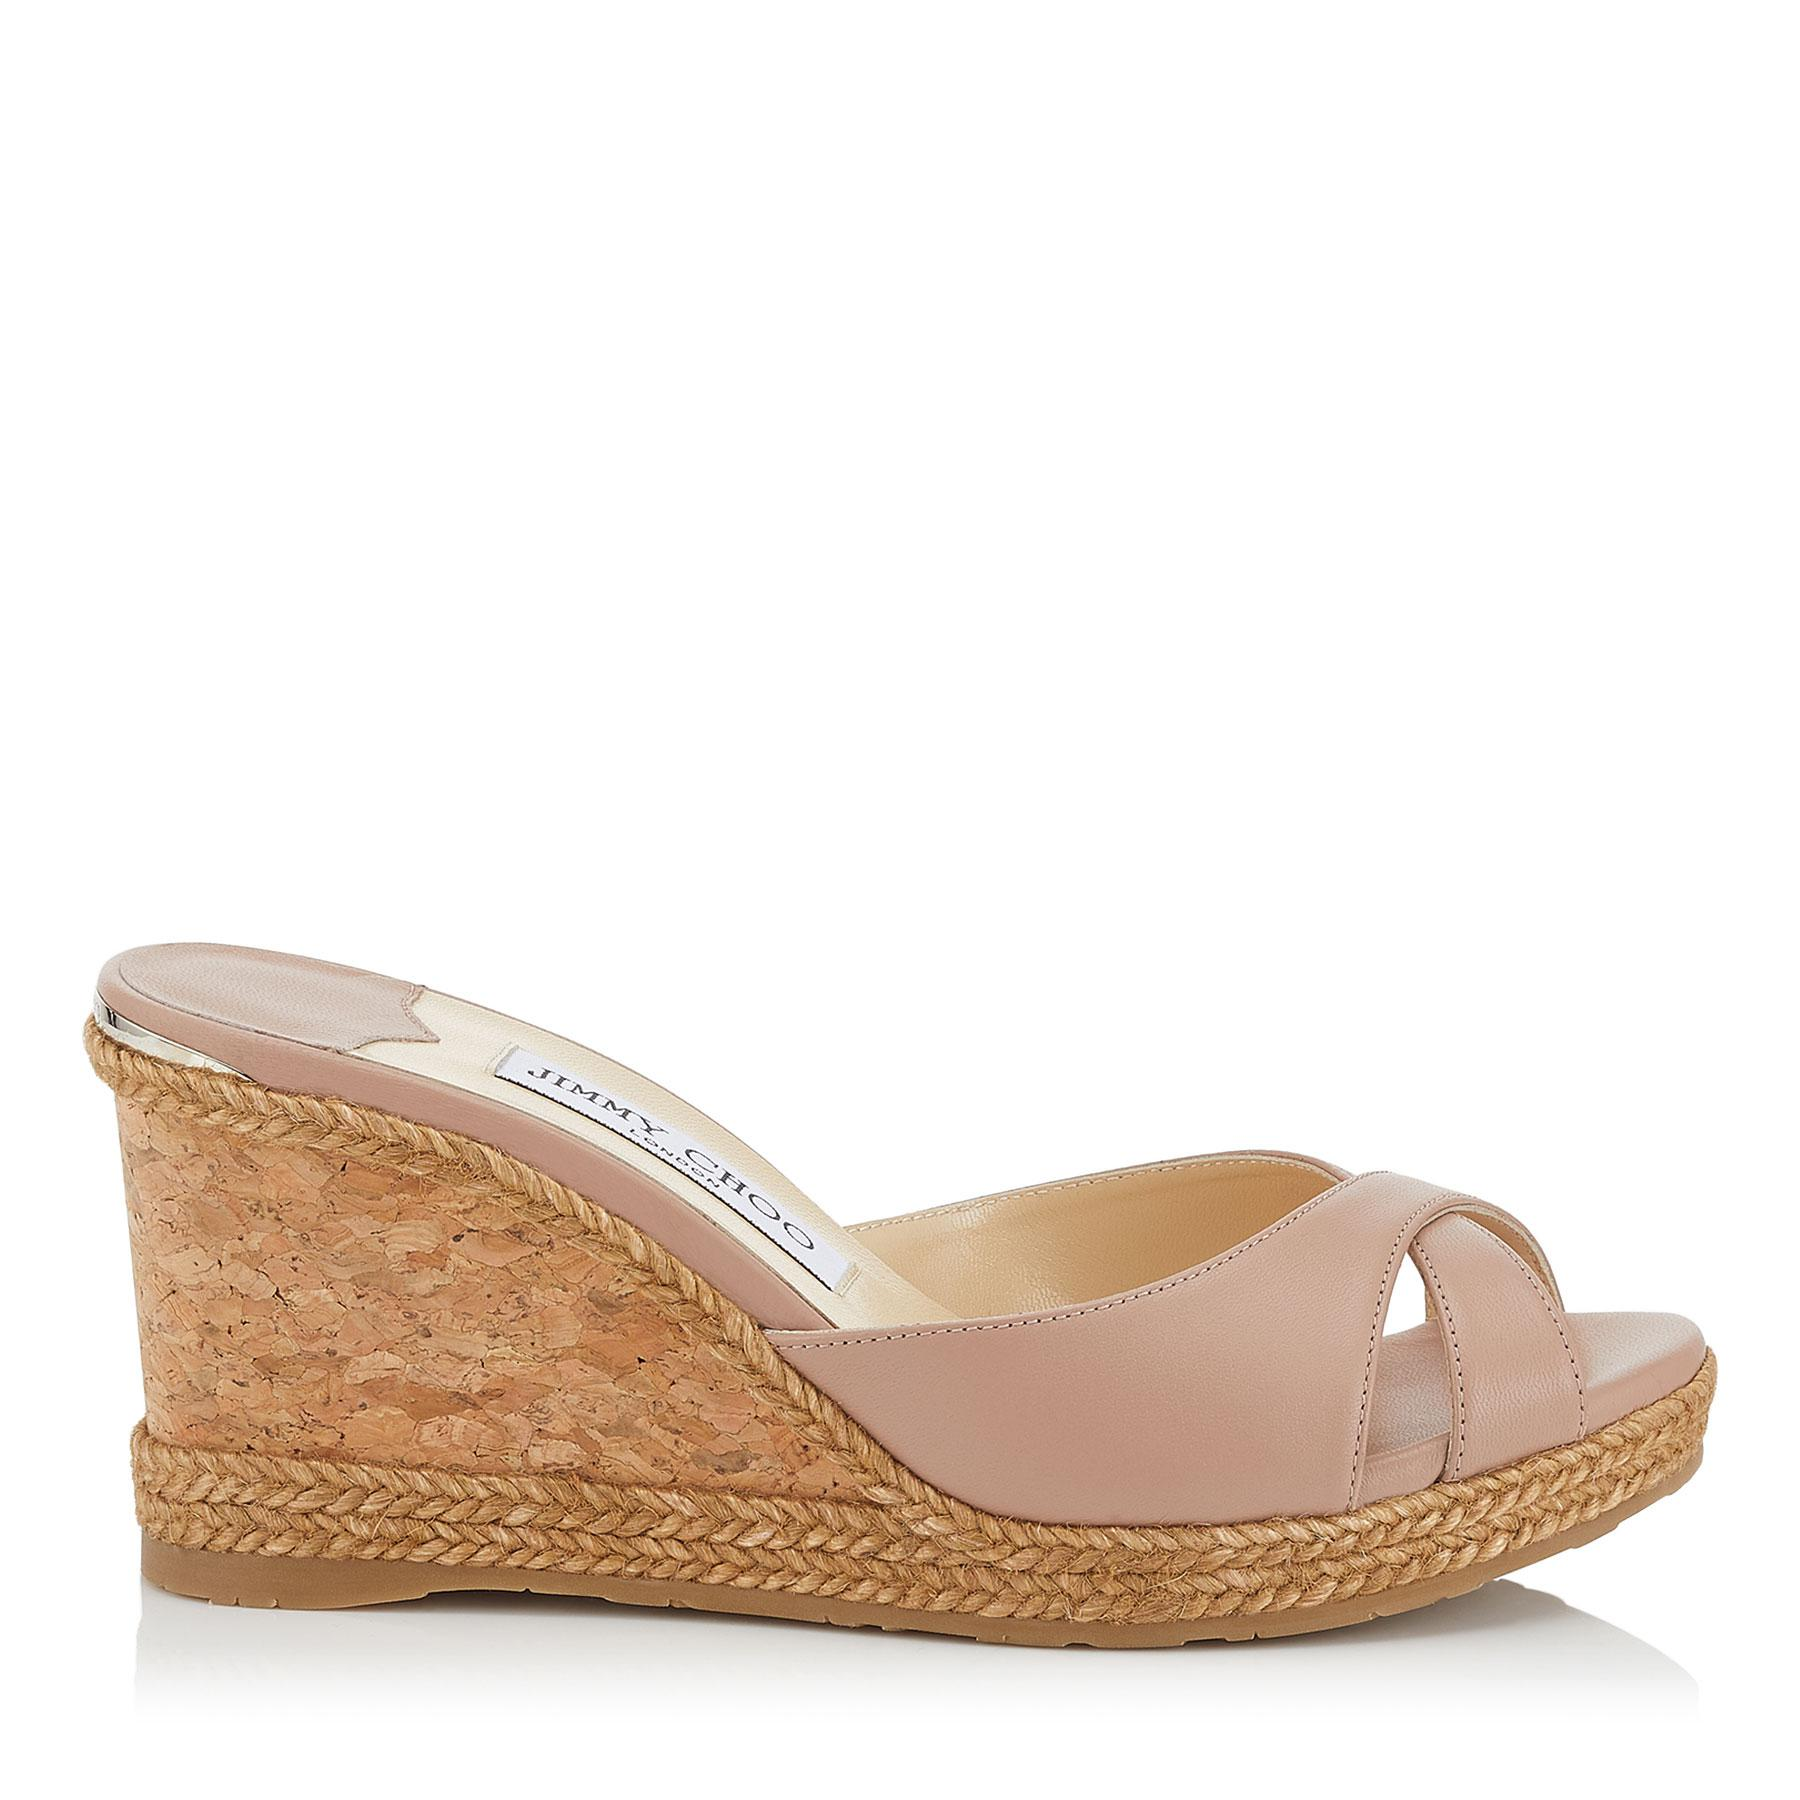 2a0435eb2980 Jimmy Choo. Women s Almer 80 Pink Nappa Leather Sandal Mules With Braid ...